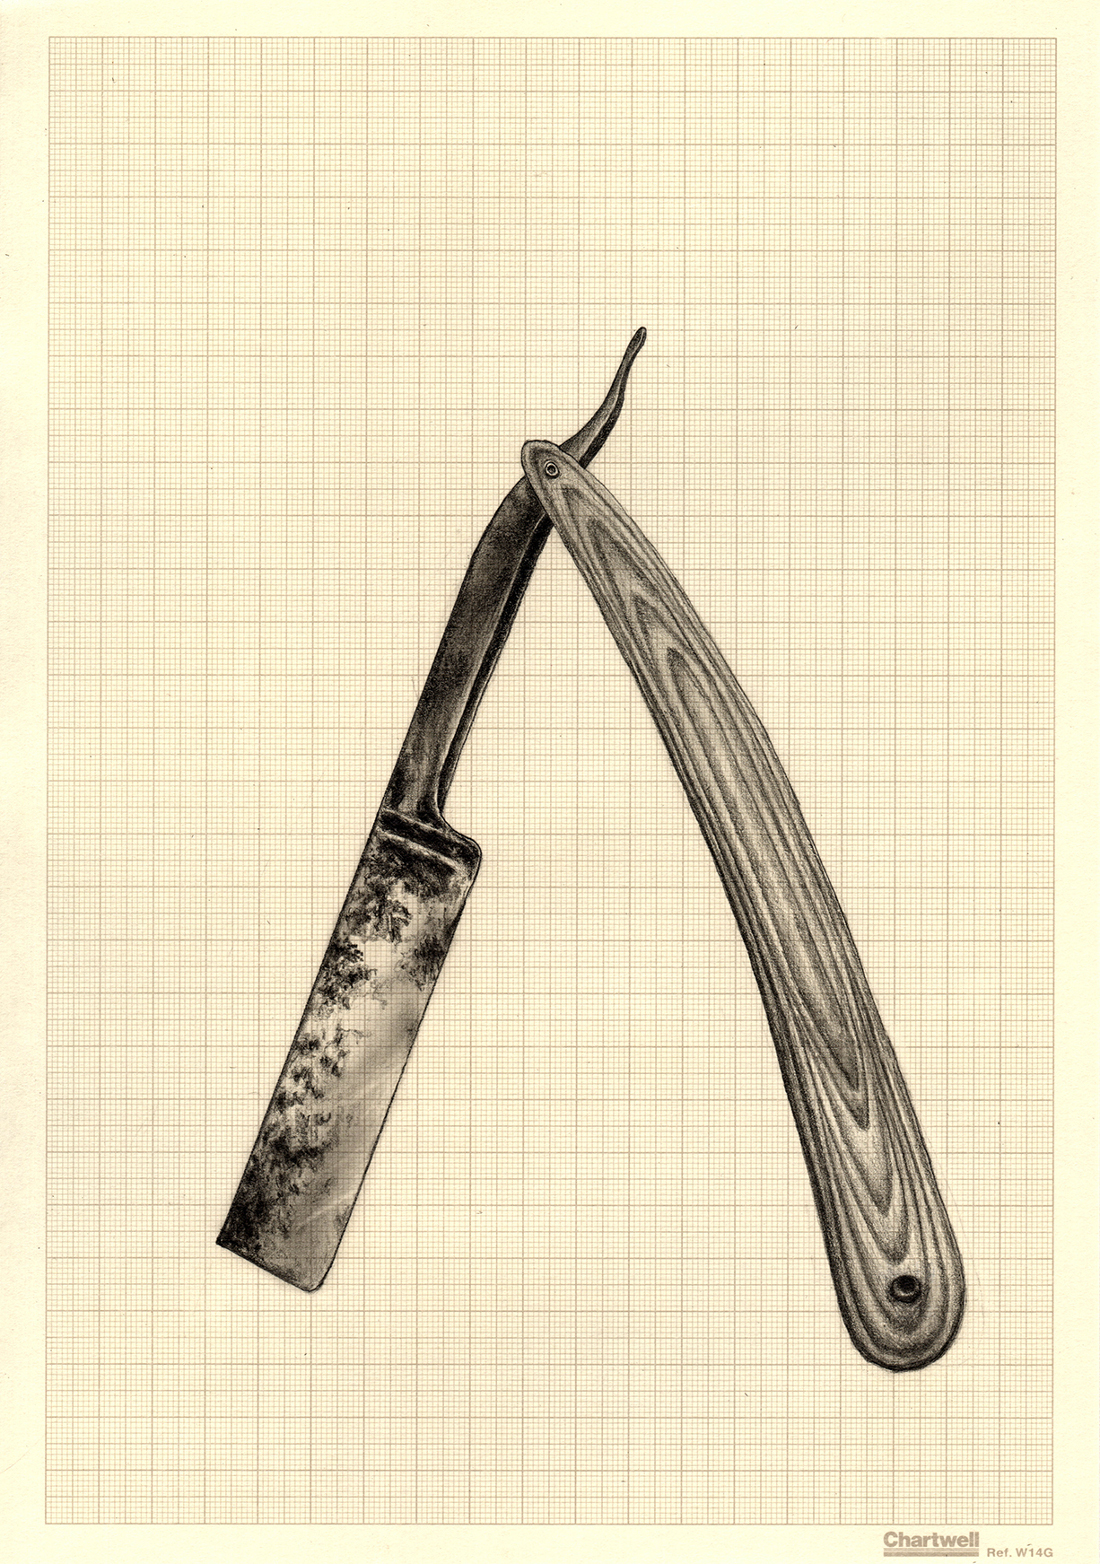 Occam's Rusty Razor, graphite on graph paper, 29.7cm x 21cm, 2015